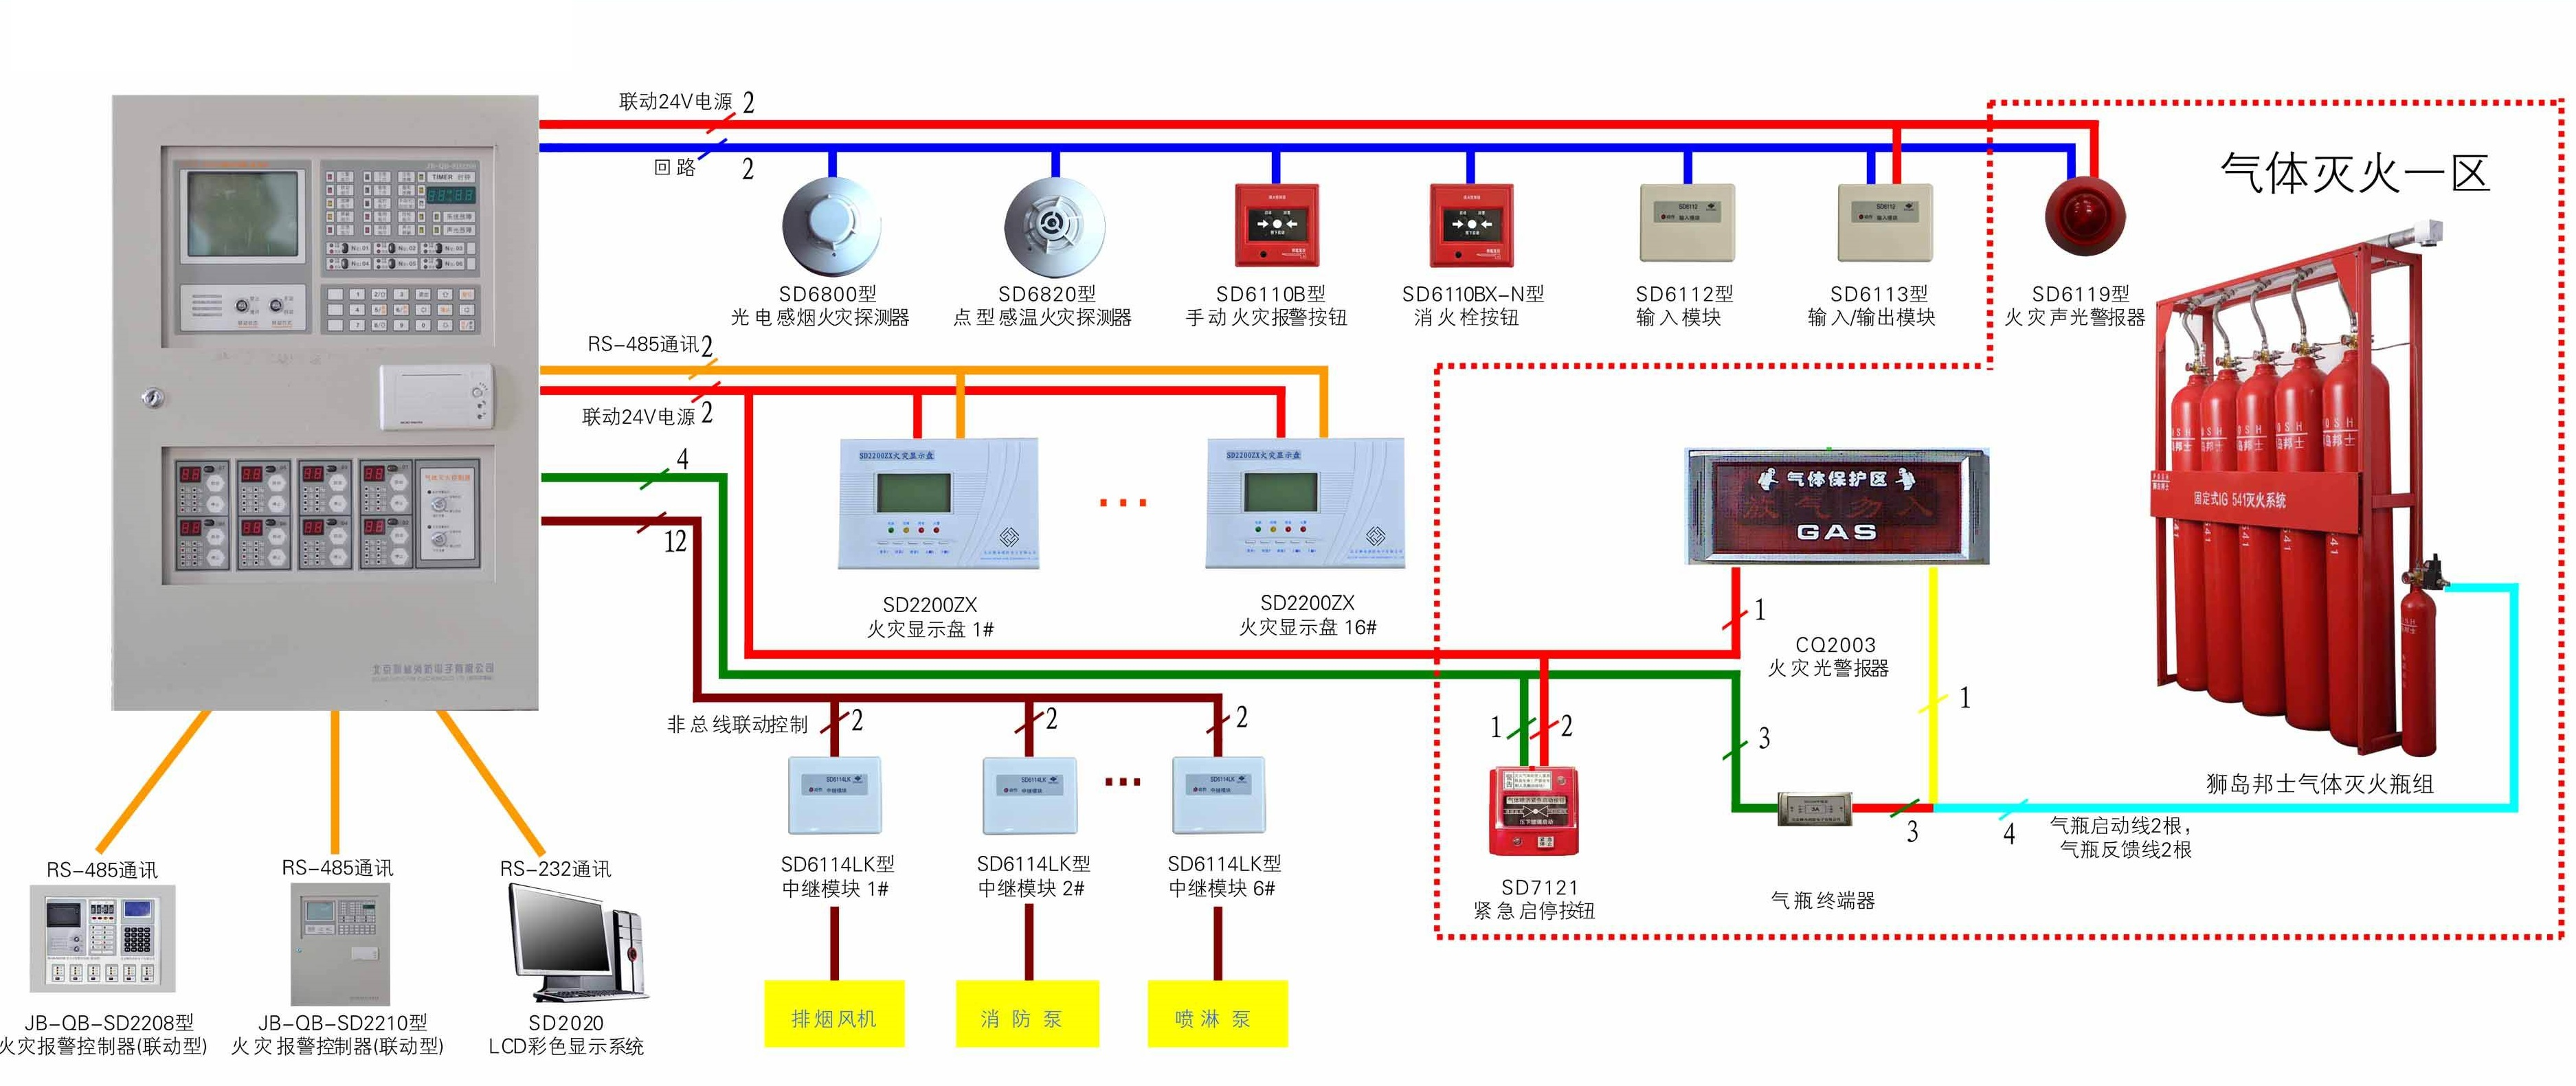 Excellent How To Install A Remote Starter Huge Remote Start Wiring Solid Technical Service Bulletin Lookup Solar System Electrical Diagram Youthful The Solar System Diagram DarkWiring An Electrical Box Wiring Diagram For Fire Alarm System \u2013 The Wiring Diagram ..